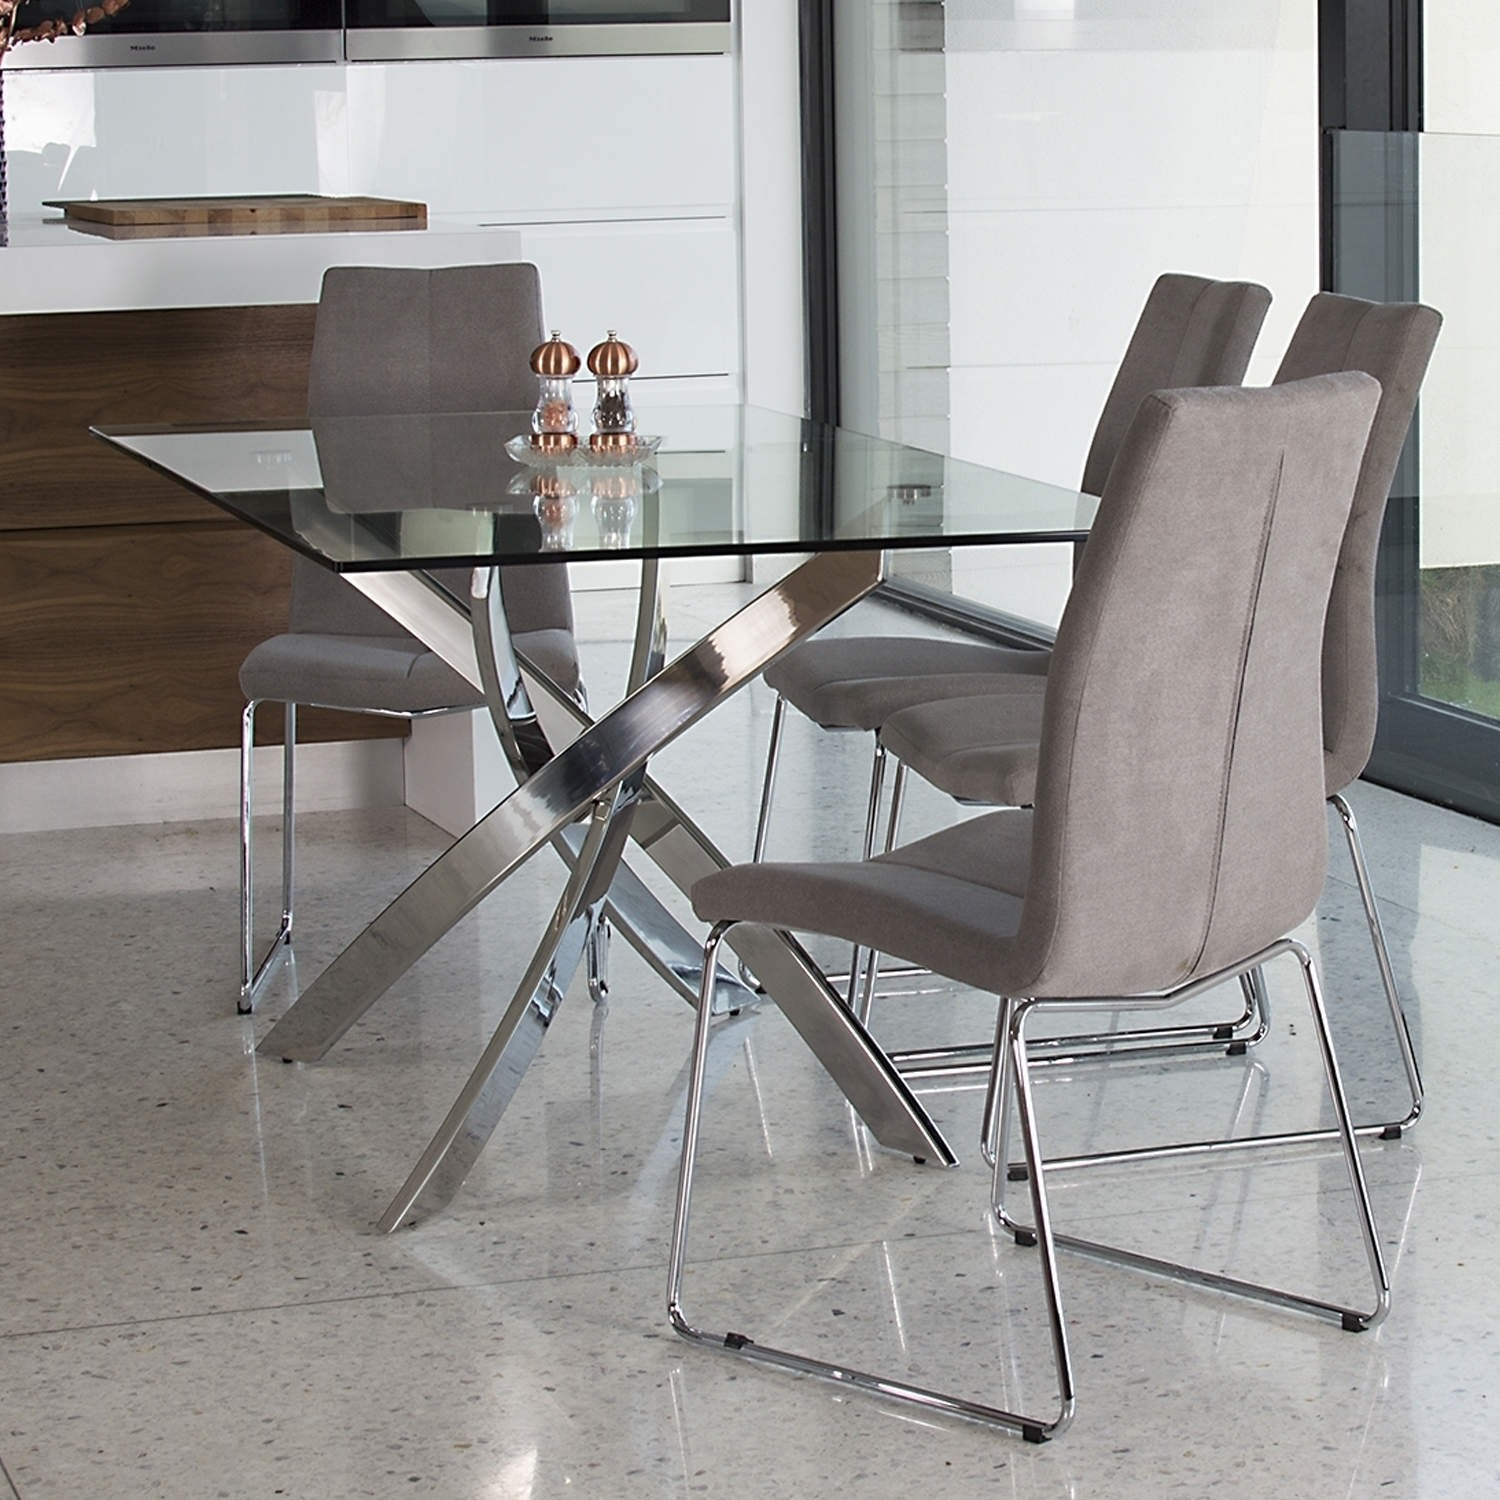 rectangle glass table and chairs> OFF 9